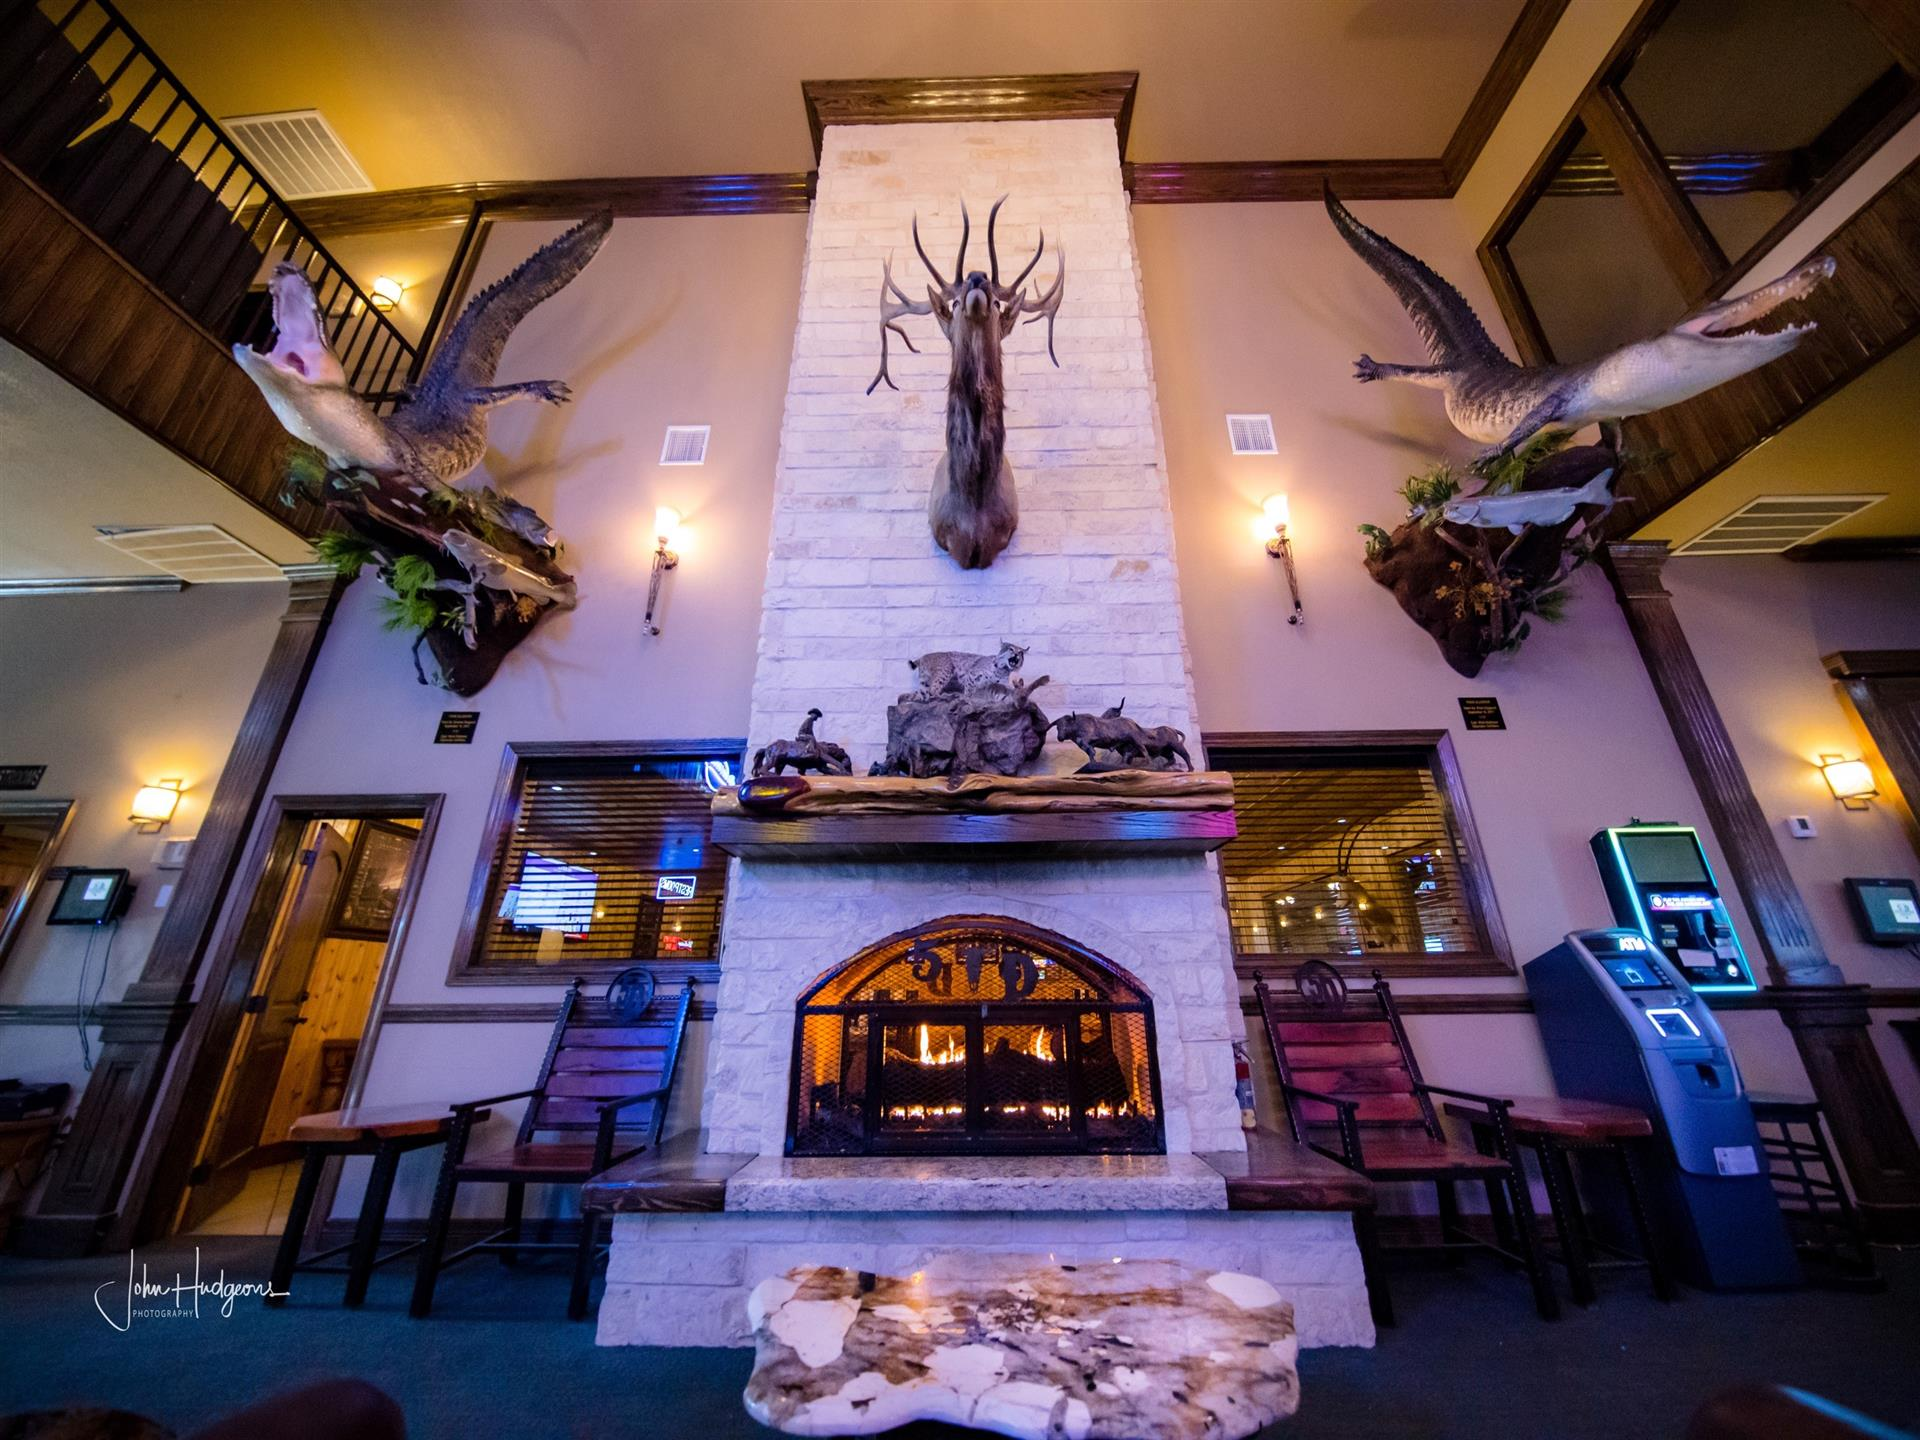 Fire place from floor to ceiling with deer head mounted on top